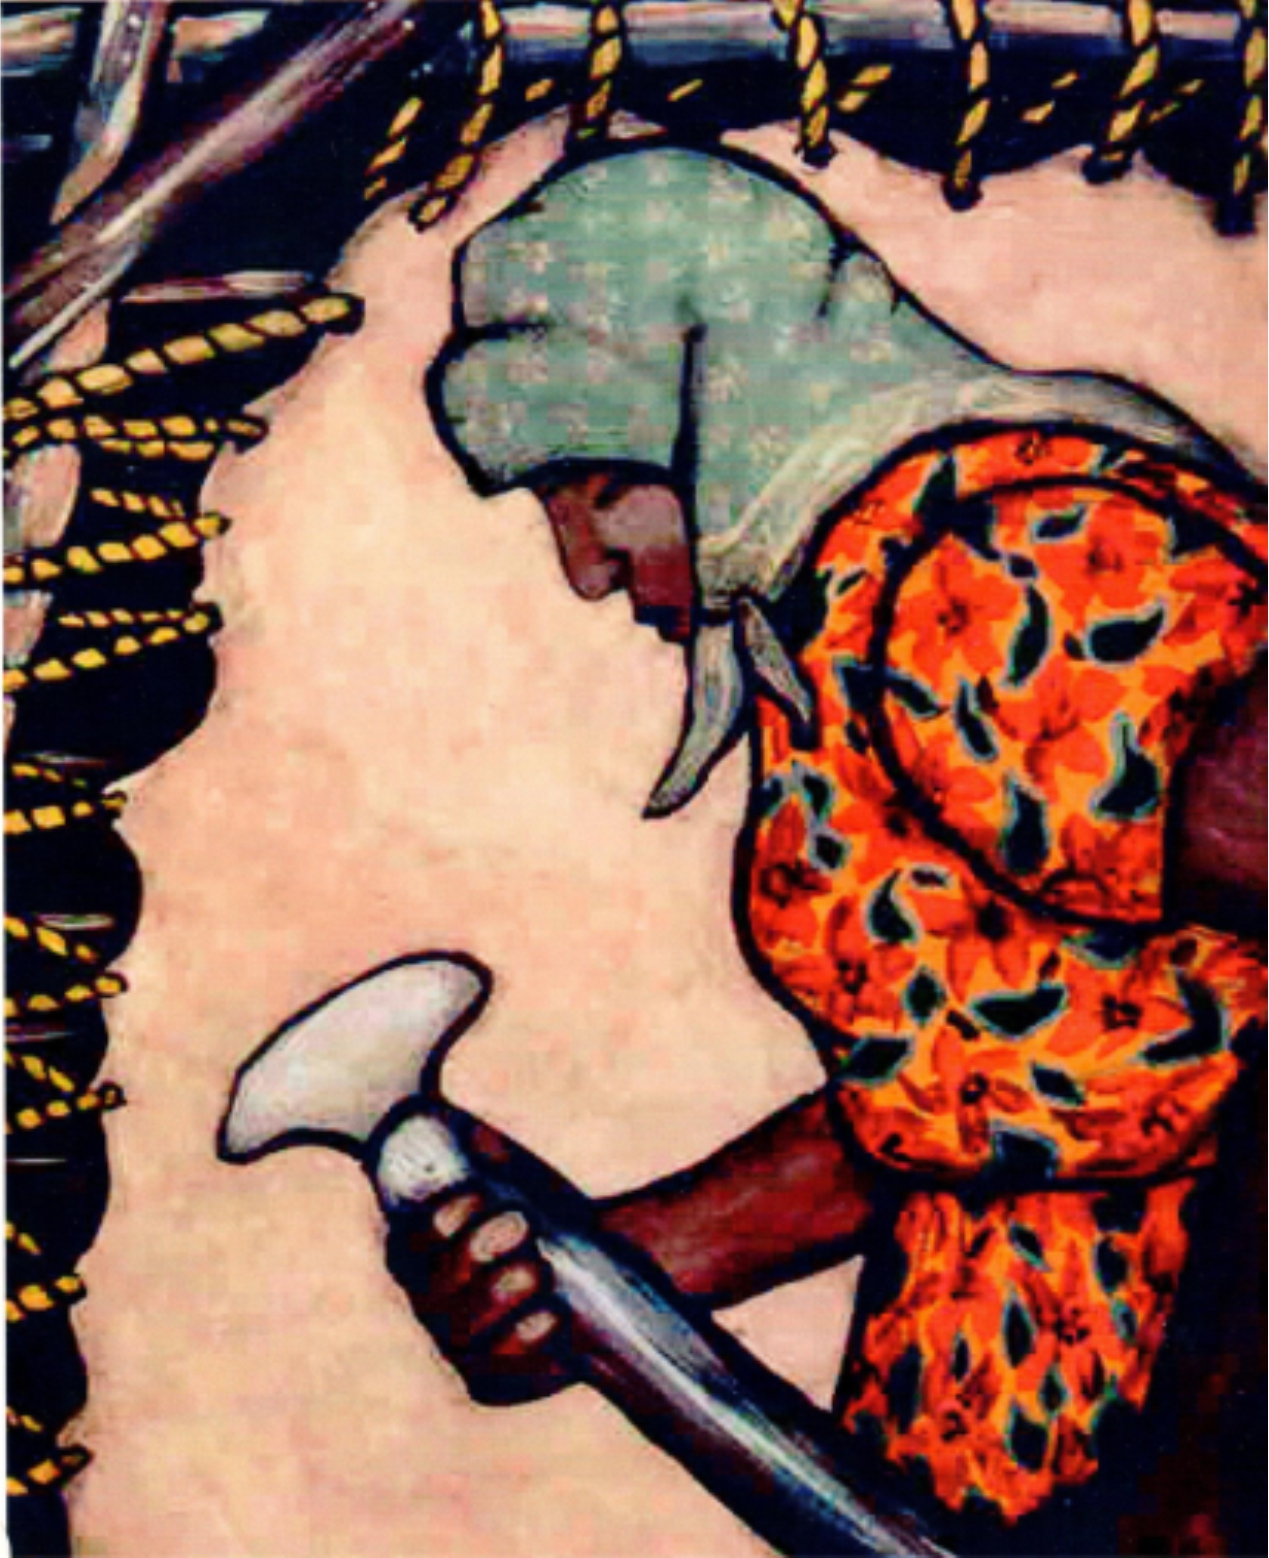 A painting by Nokomis showing her grandmother scraping a hide.